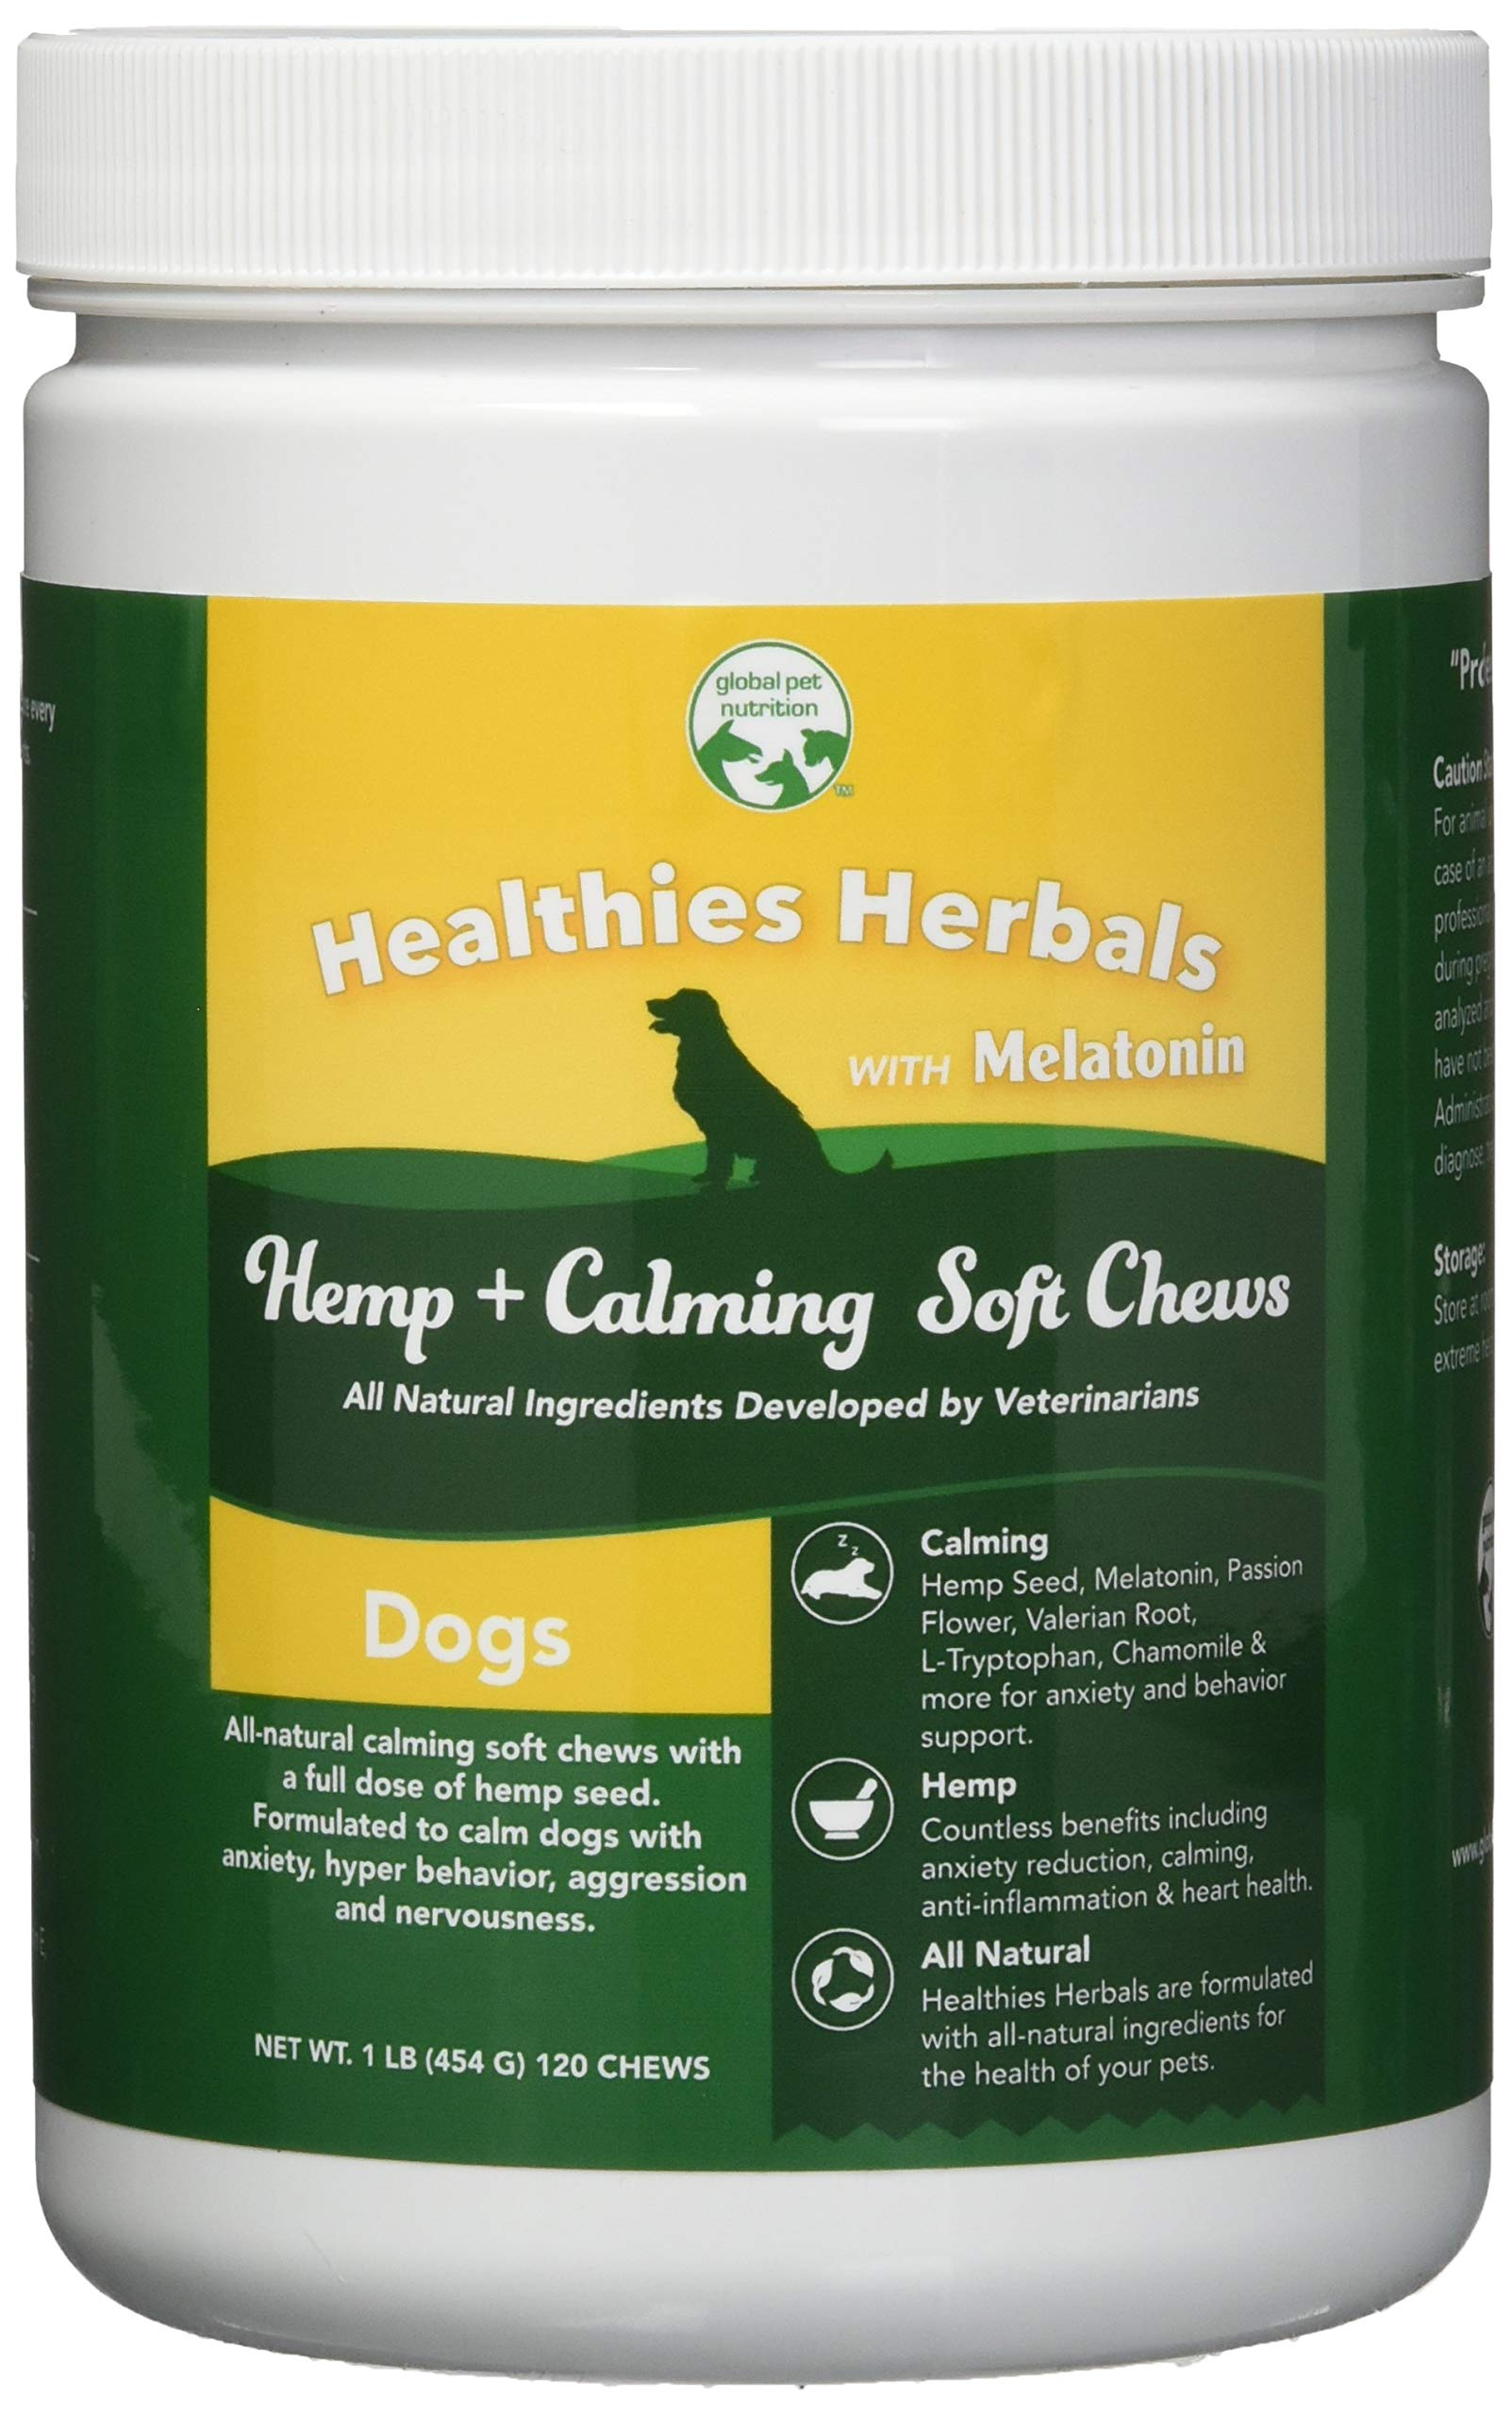 Global Pet Nutrition All-Natural Calming Soft Chews with Full Dose of Hemp Powder & Hemp Oil + Full Dose of Calming Matrix | Anxiety, Barking, Stress & Hyperactivity Relief | 120 Chews Great Value